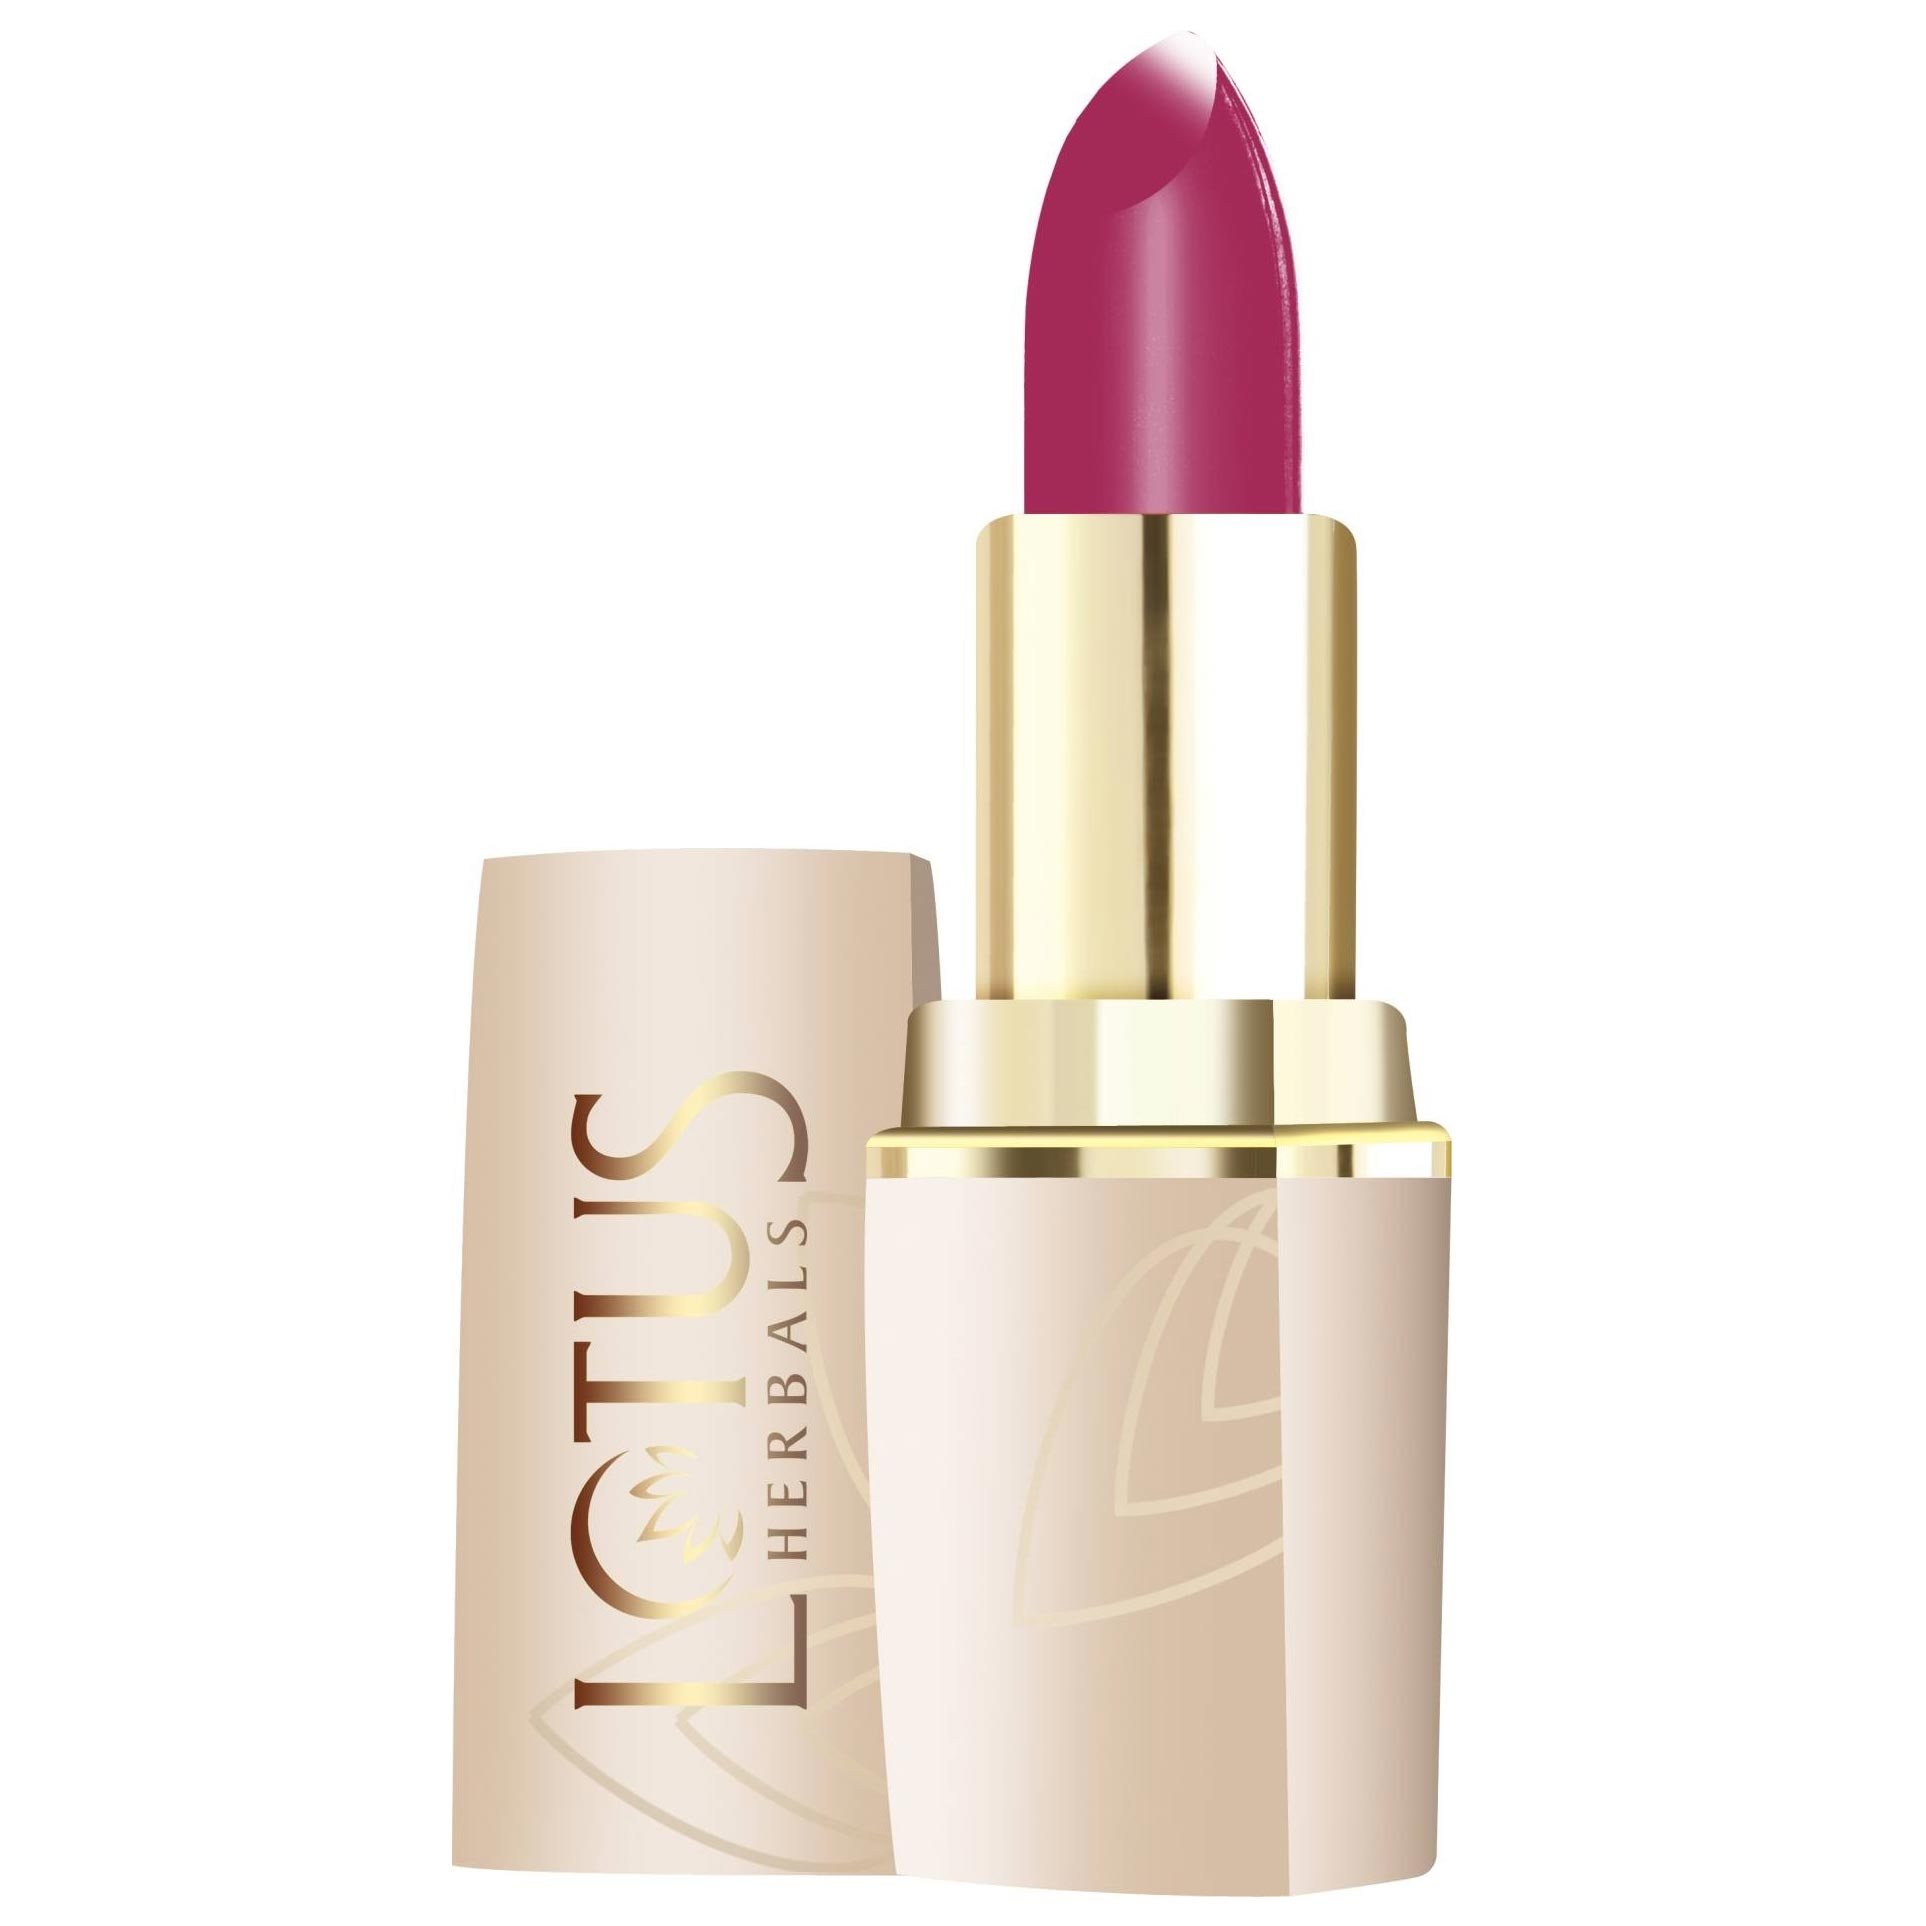 Lotus Herbals Pure Color Magenta Fire Lip Color